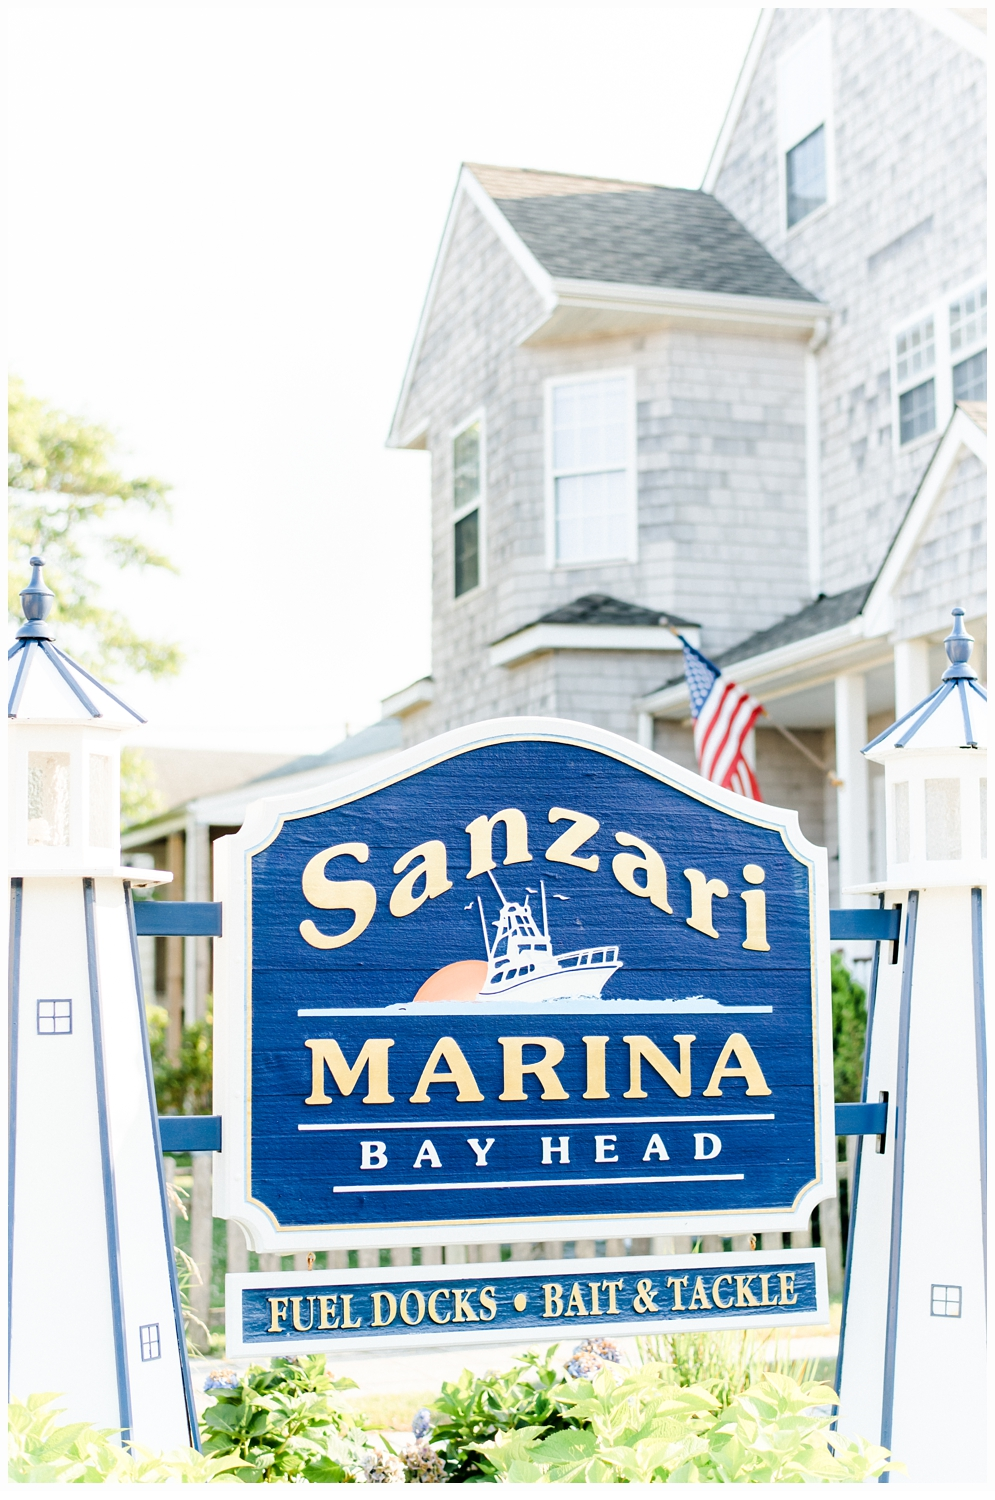 Bay head new jersey marina sign